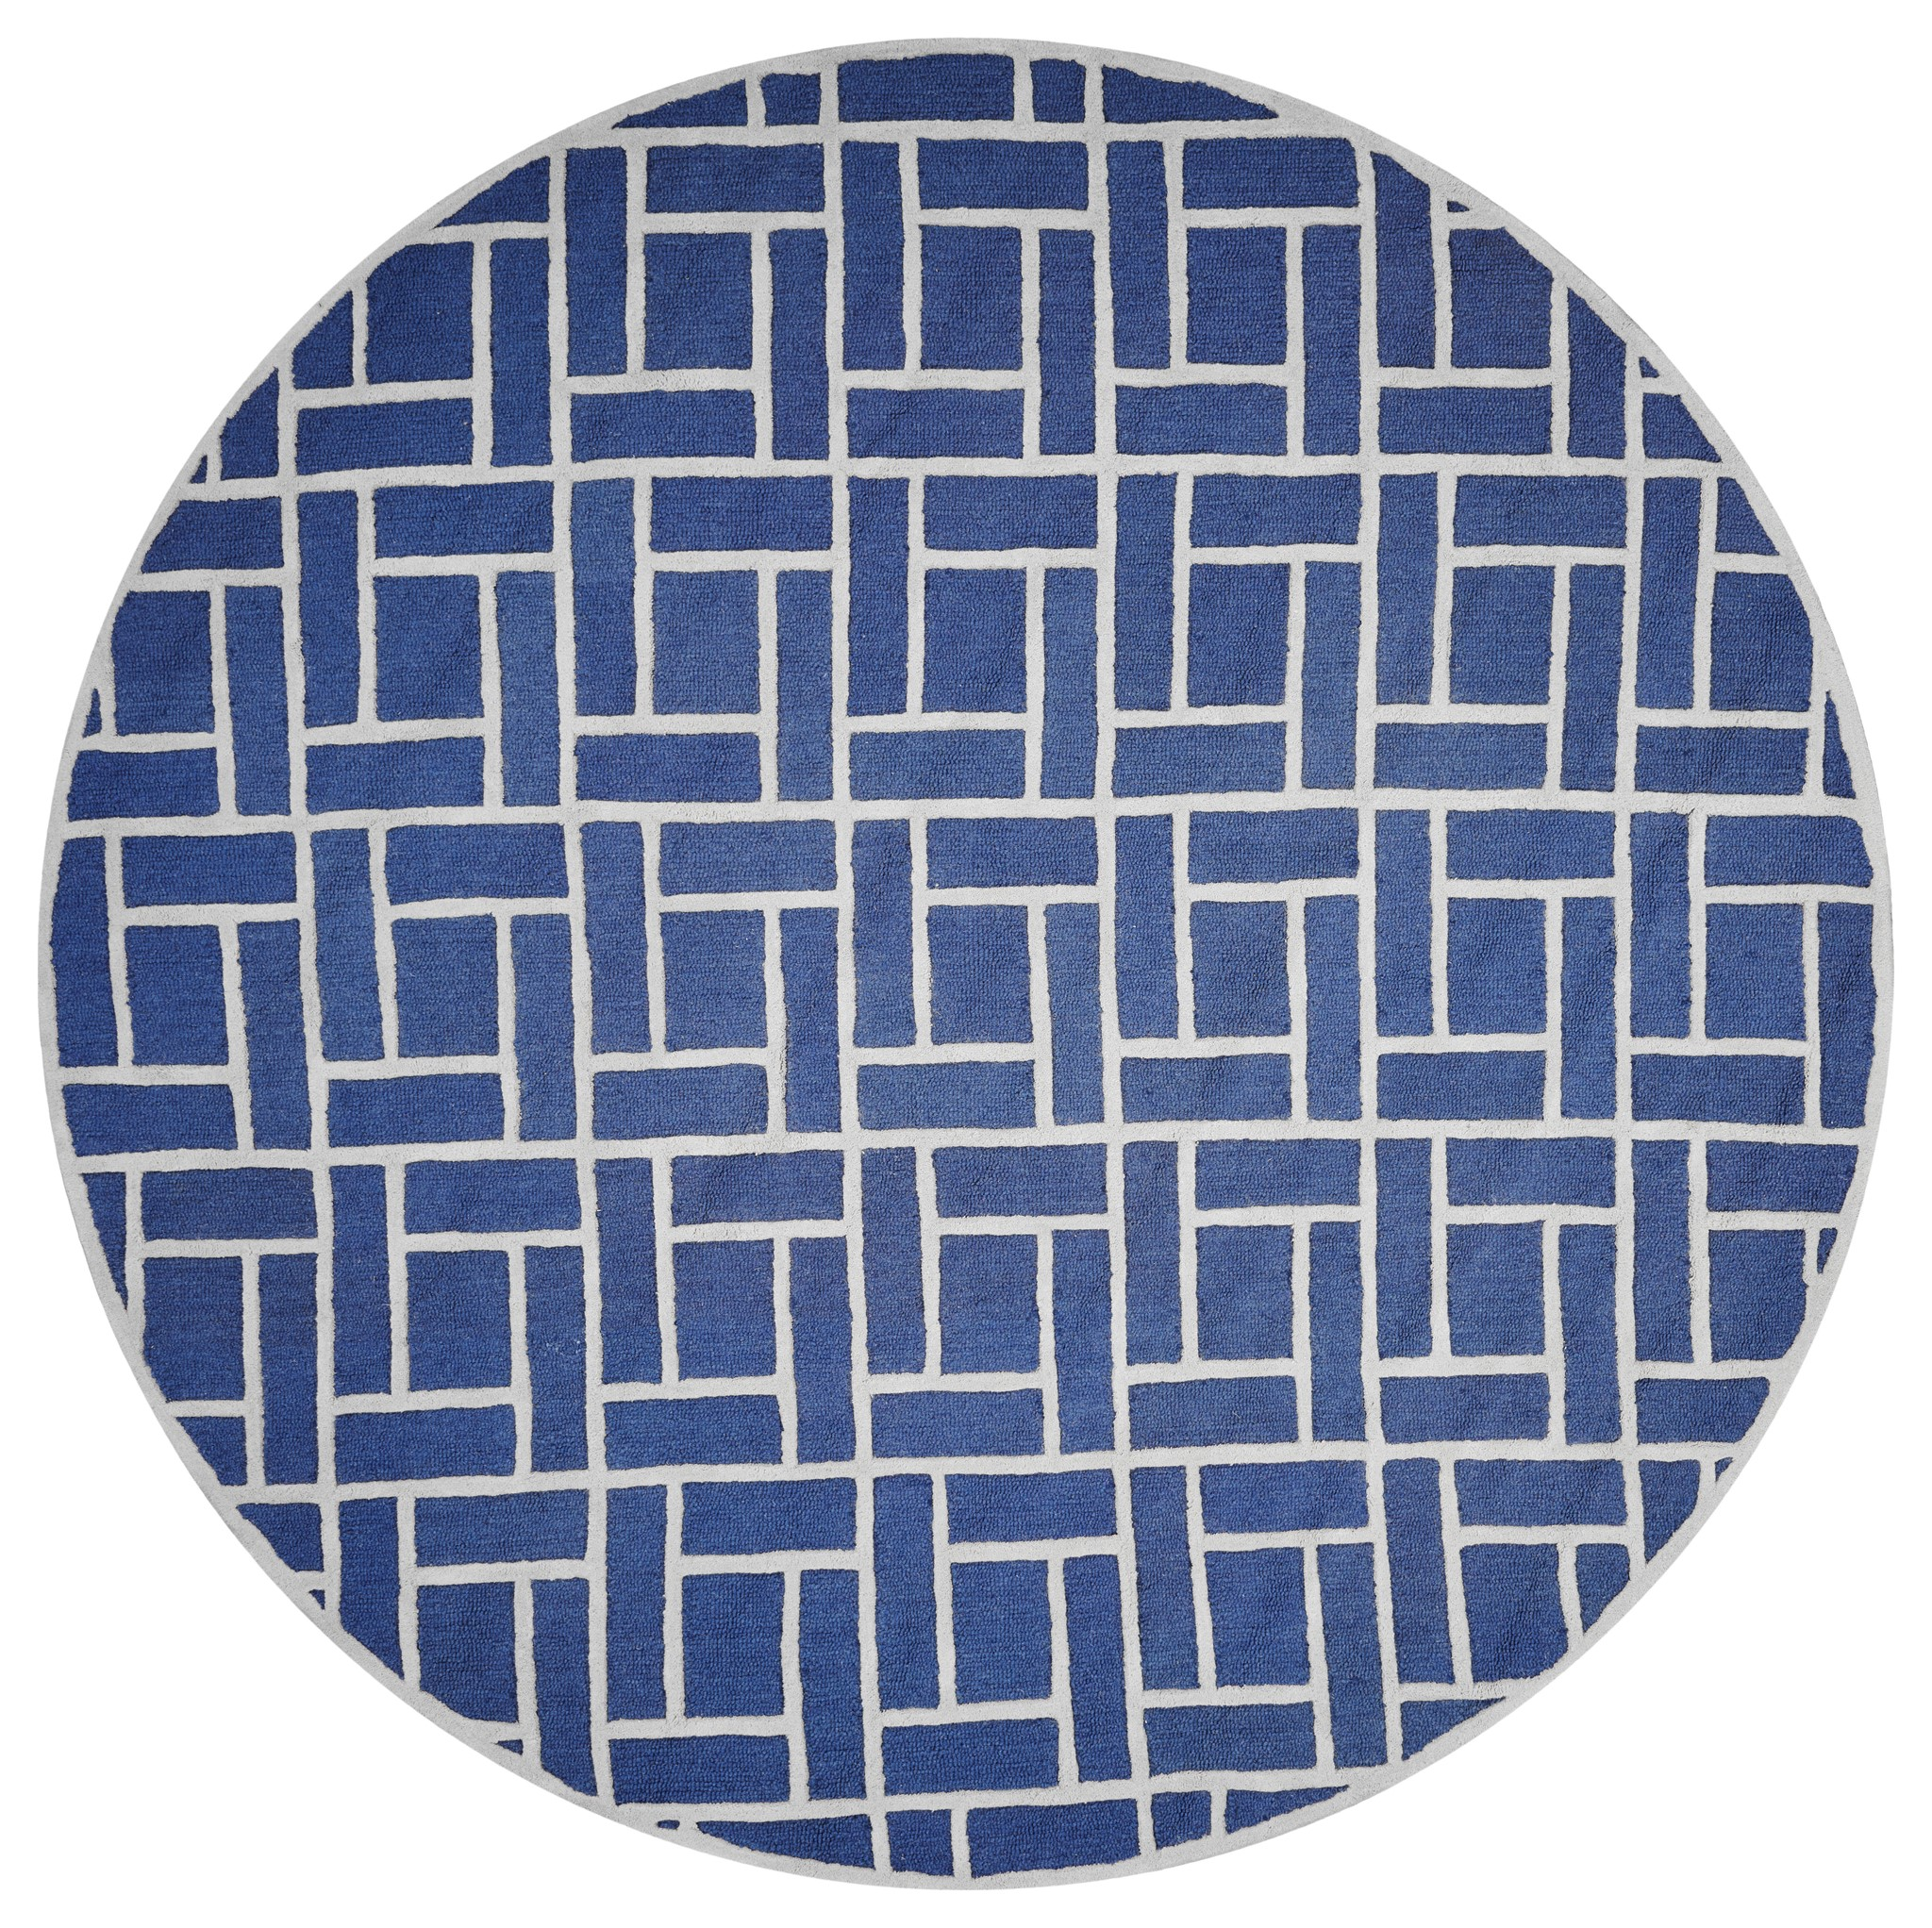 Soho 5022 Indigo Brick by Brick